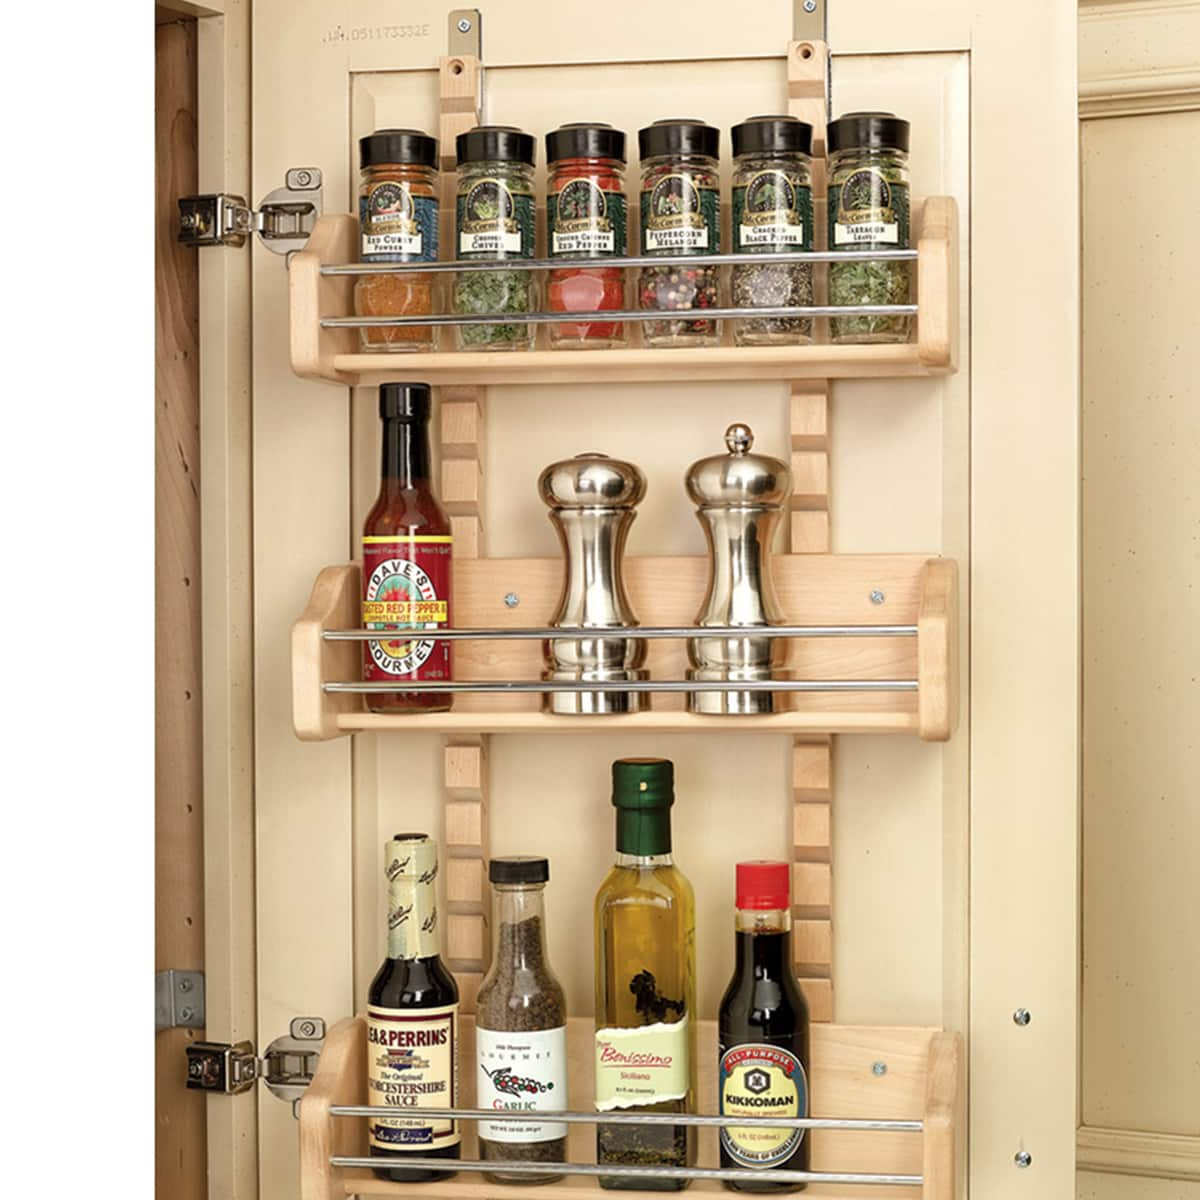 10 Fun Finds to Get Your Cabinets More Organized: gallery image 8